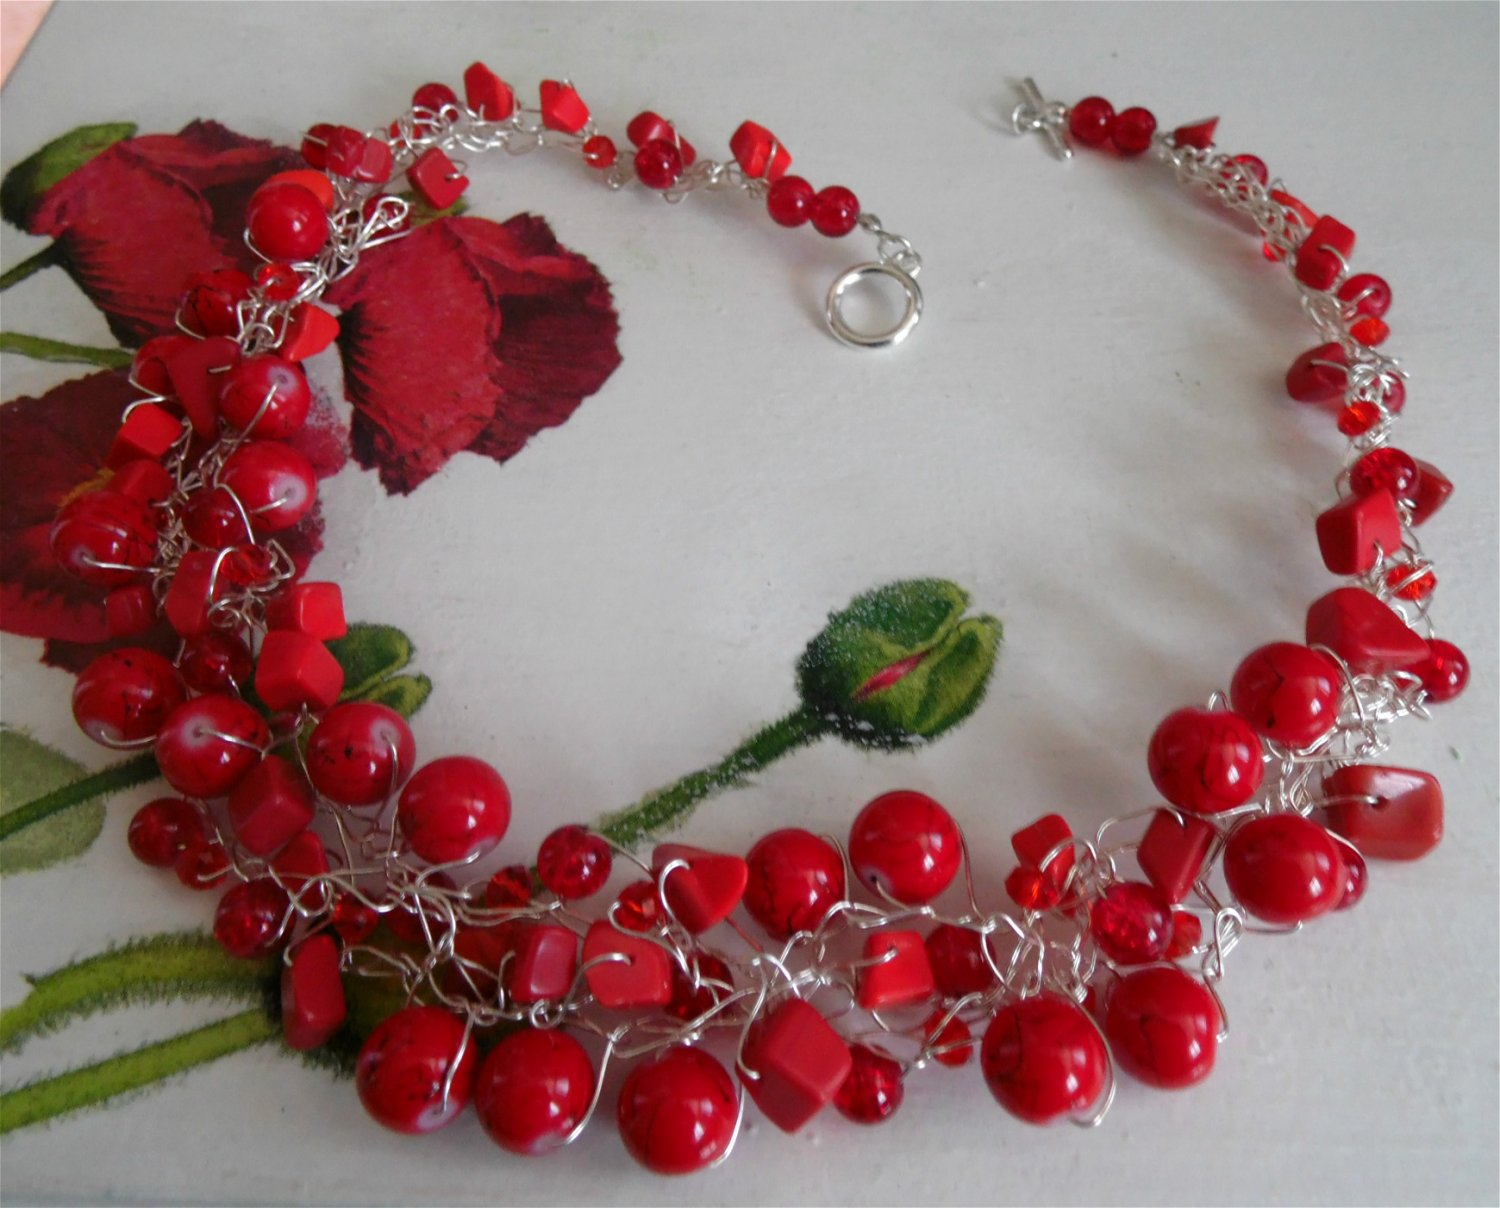 Red crochet wire necklace, coral red glass beads